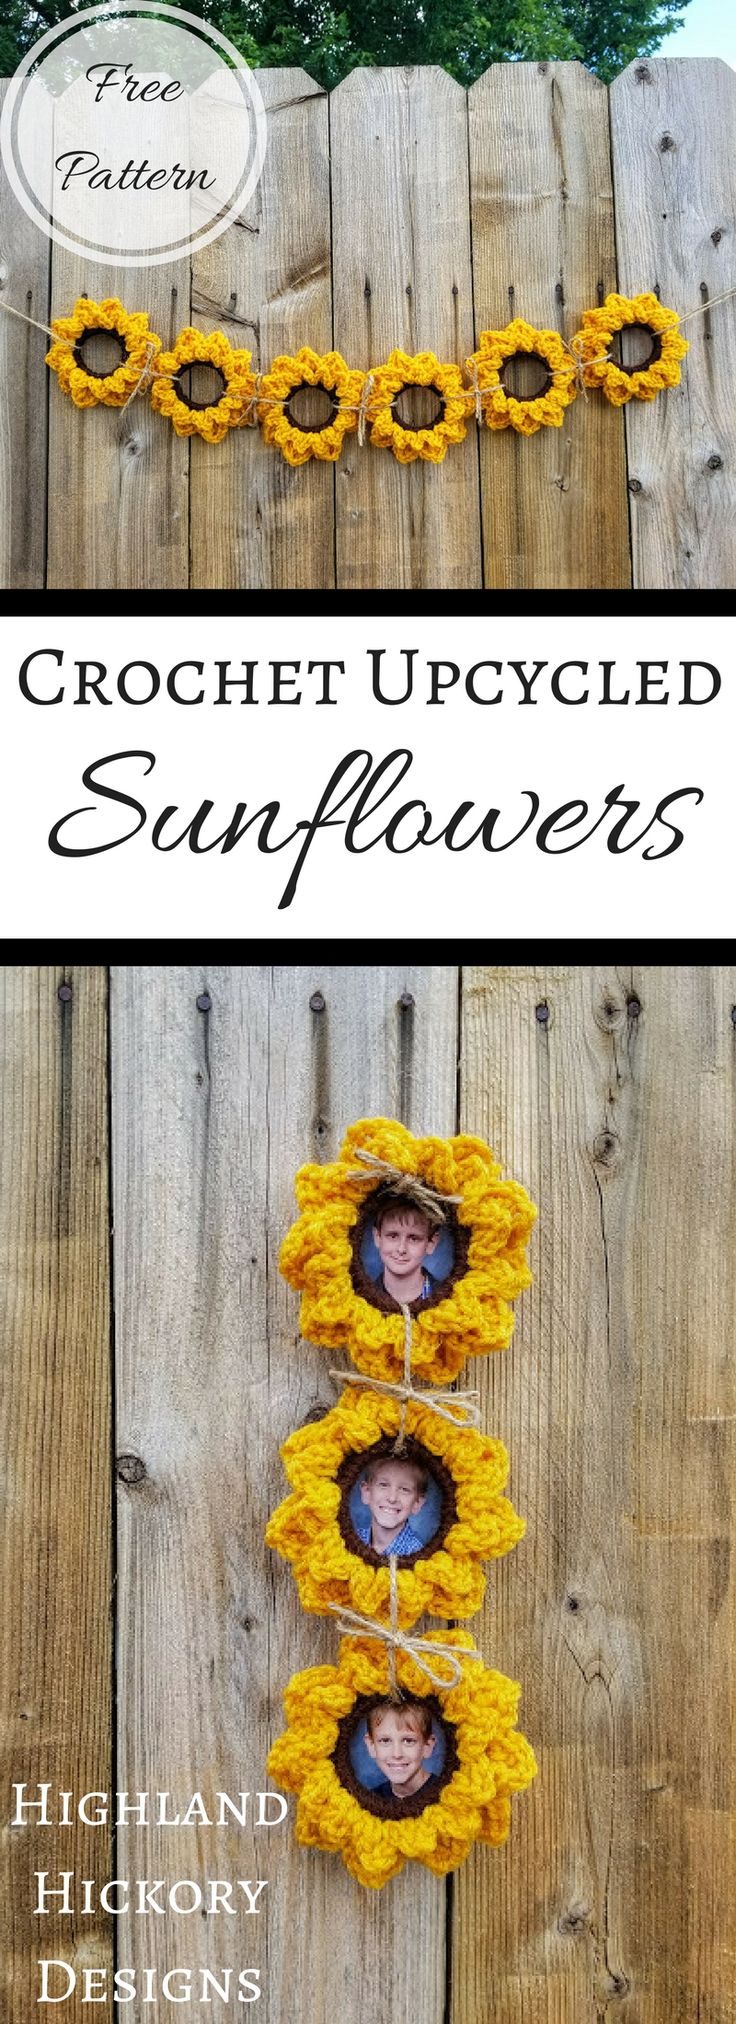 Crochet sunflowers free pattern | crochet garland sunflowers